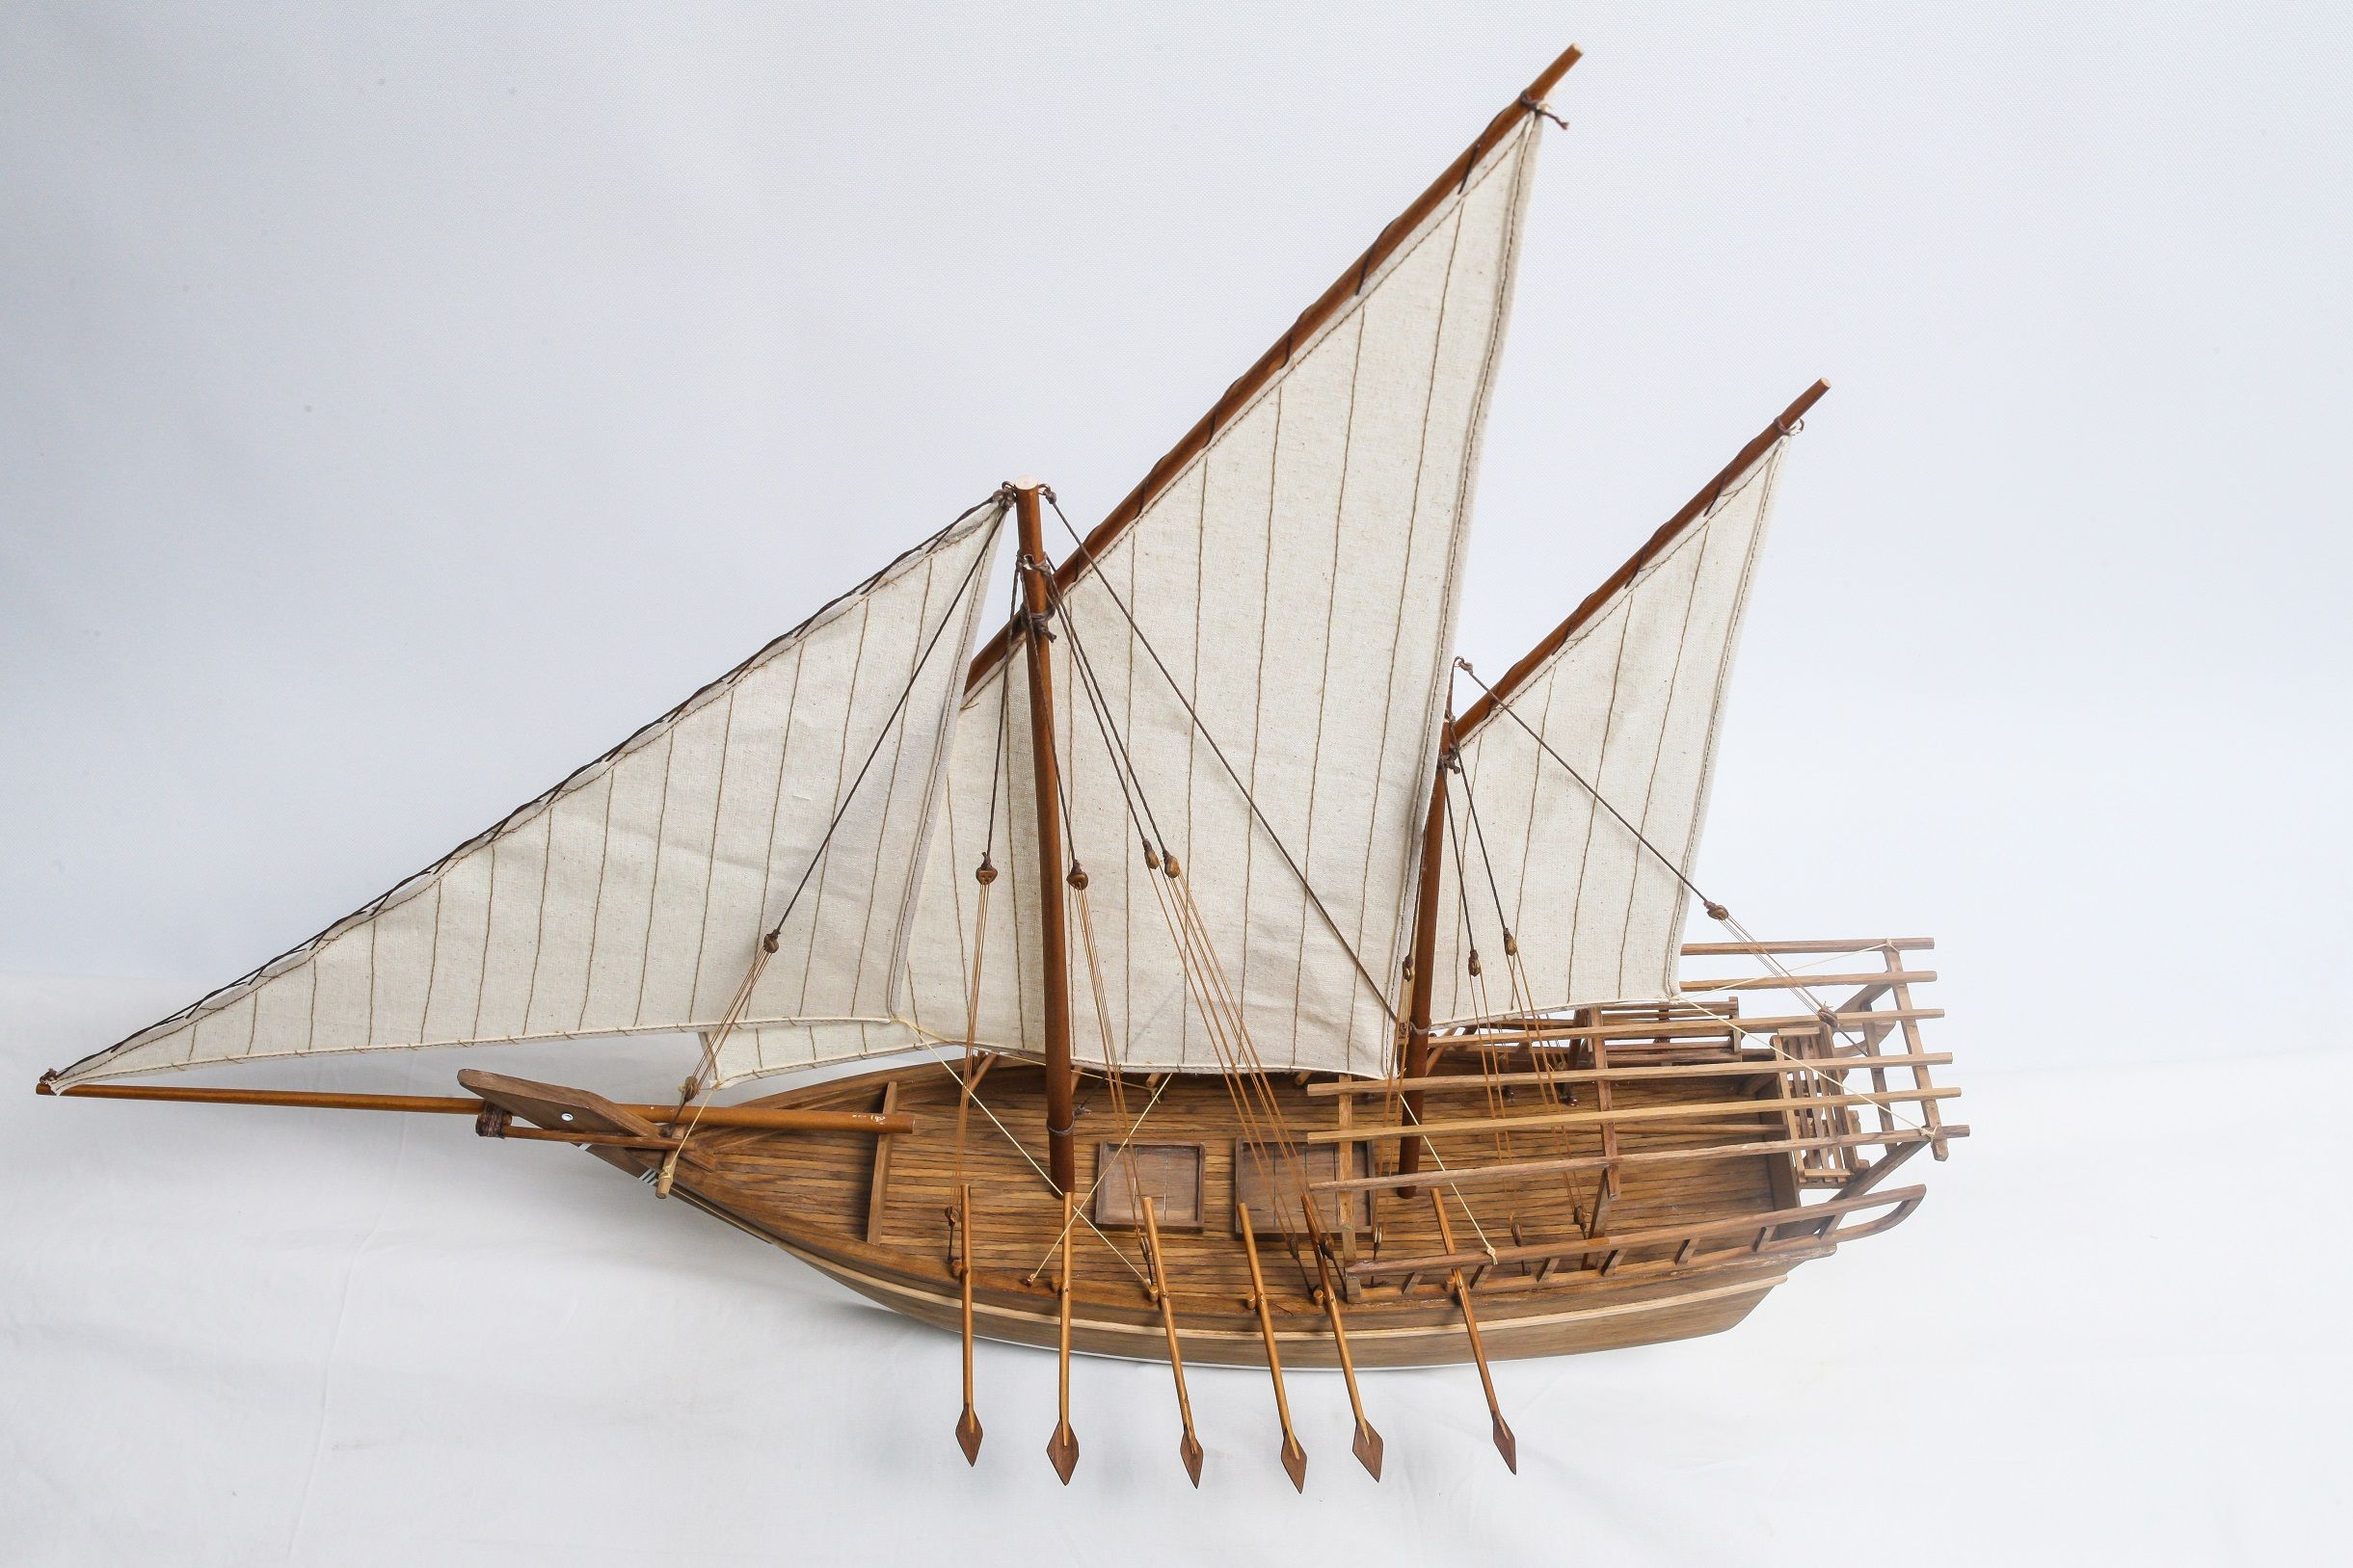 1528-9183-Shu-ai-Dhow-Model-Boat